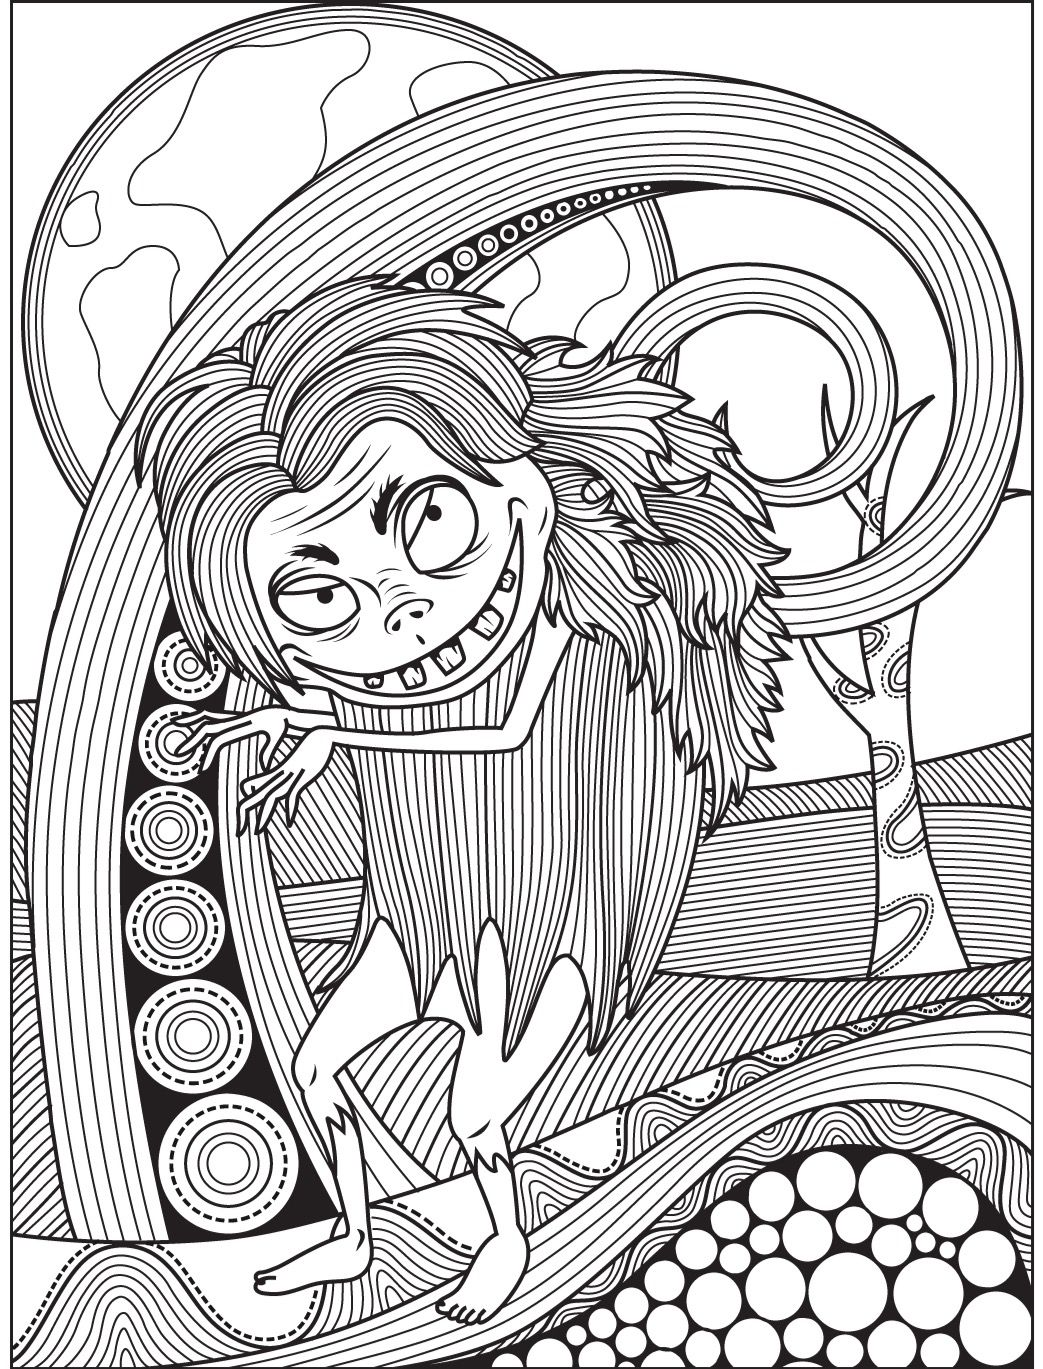 1043x1369 Best Halloween Coloring Page Colorish App For Adults Pict